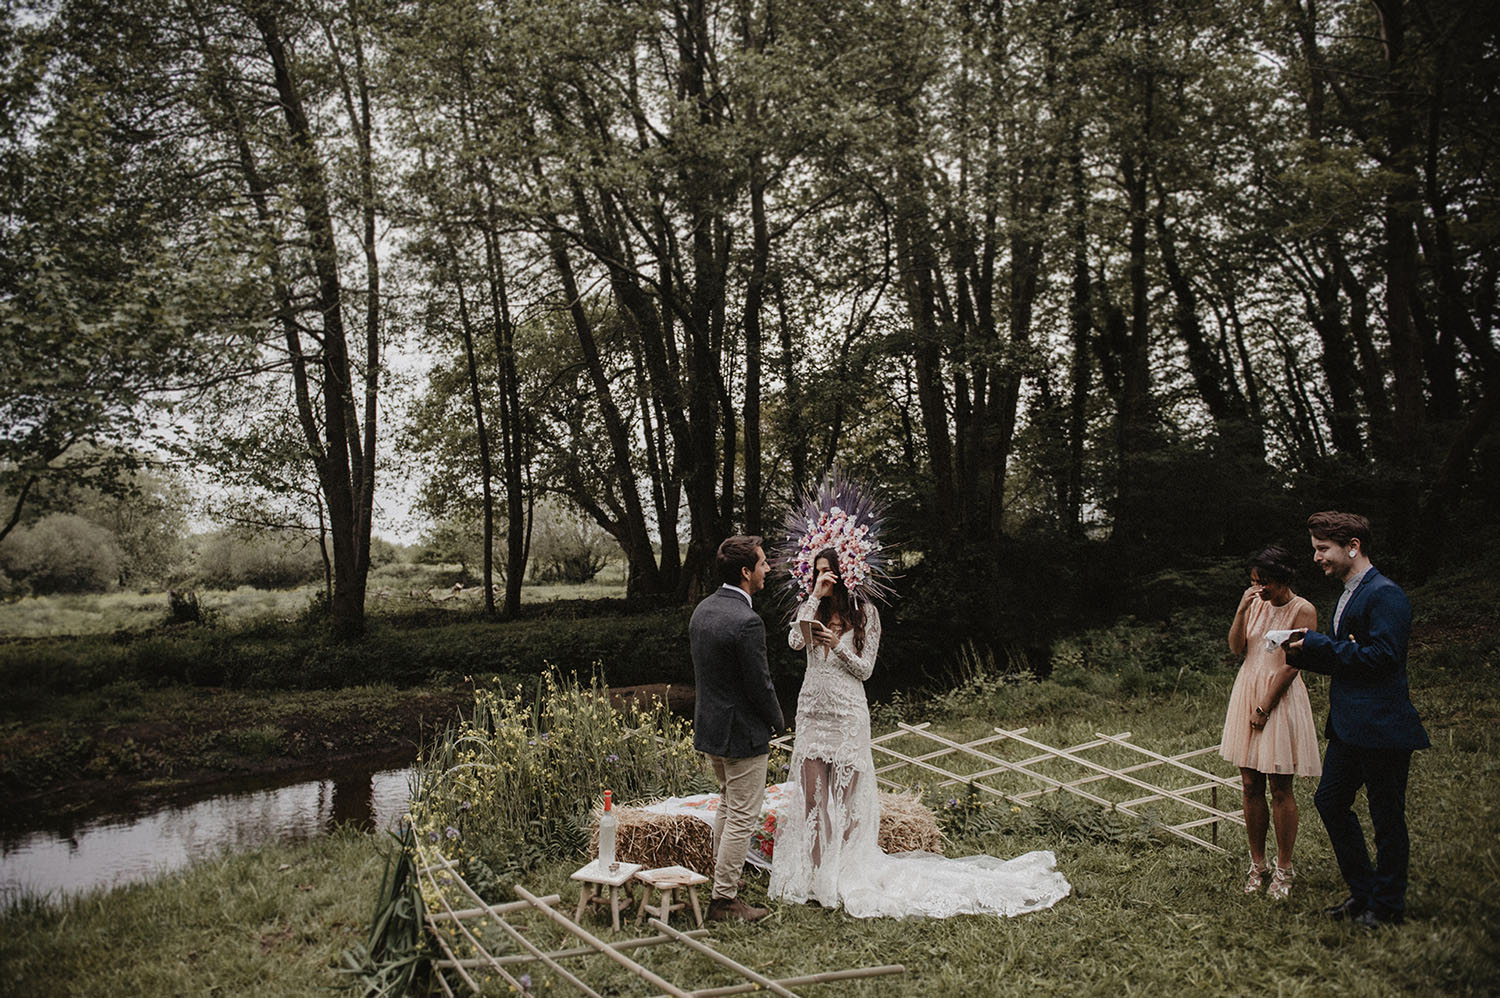 Outdoor ceremony at Coco Barn Wood Lodge in southwest of France, lifestyle wedding photographer Pau, Biarritz, Hossegor, Seignosse. Get married in France.